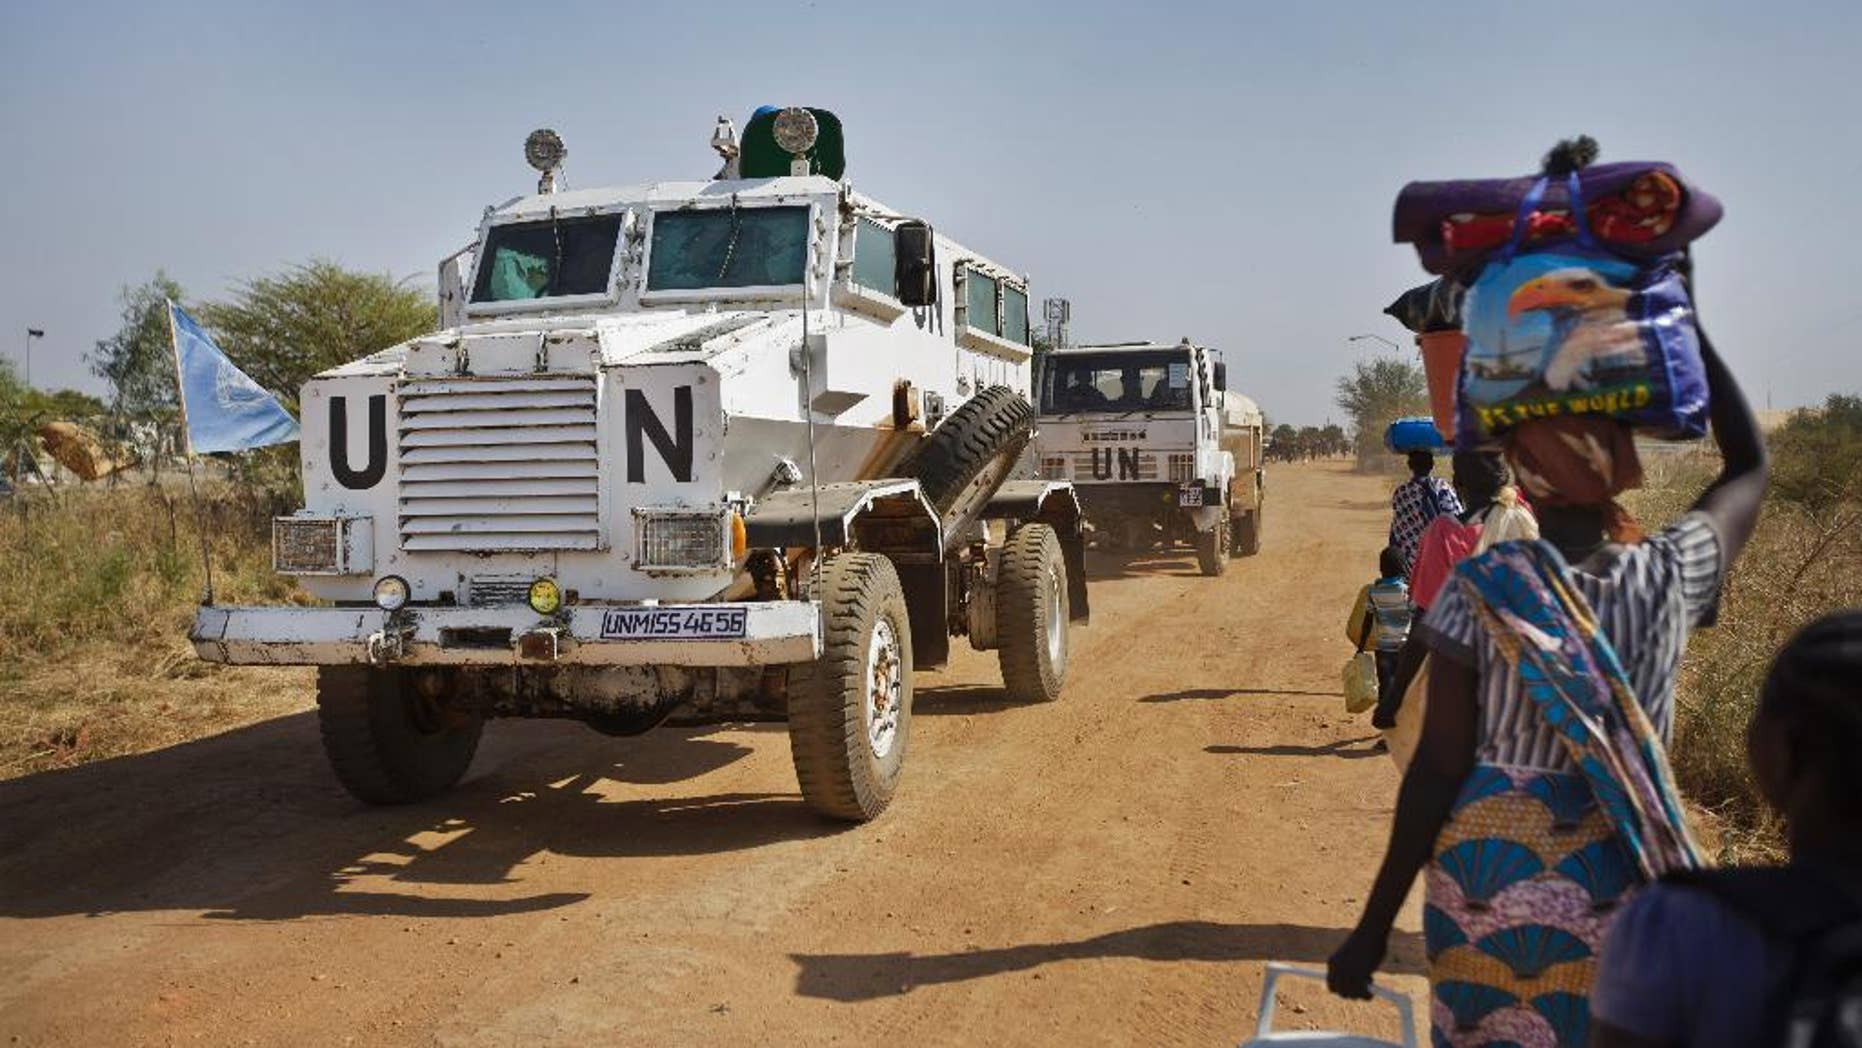 A United Nations armored vehicle passes people walking towards the U.N. camp in Malakal, South Sudan, in 2013.